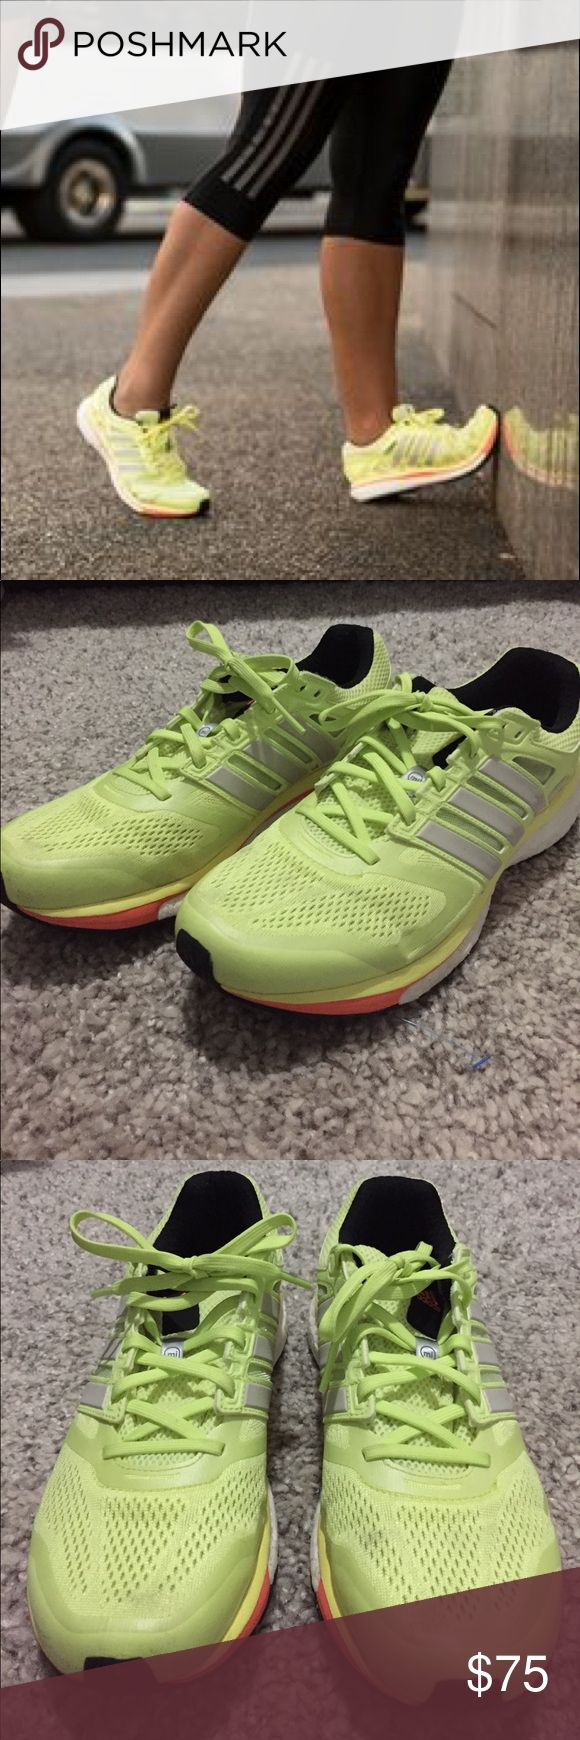 ❗️SALE❗️Adidas Supernova Glide Boost - Yellow Adidas Supernova Glide Boost - Color Yellow - Size 9 1/2 - has some very faint signs of wear in the front like the picture shows but other than that they look new. Very cool vibrant sneakers 🍋 adidas Shoes Sneakers